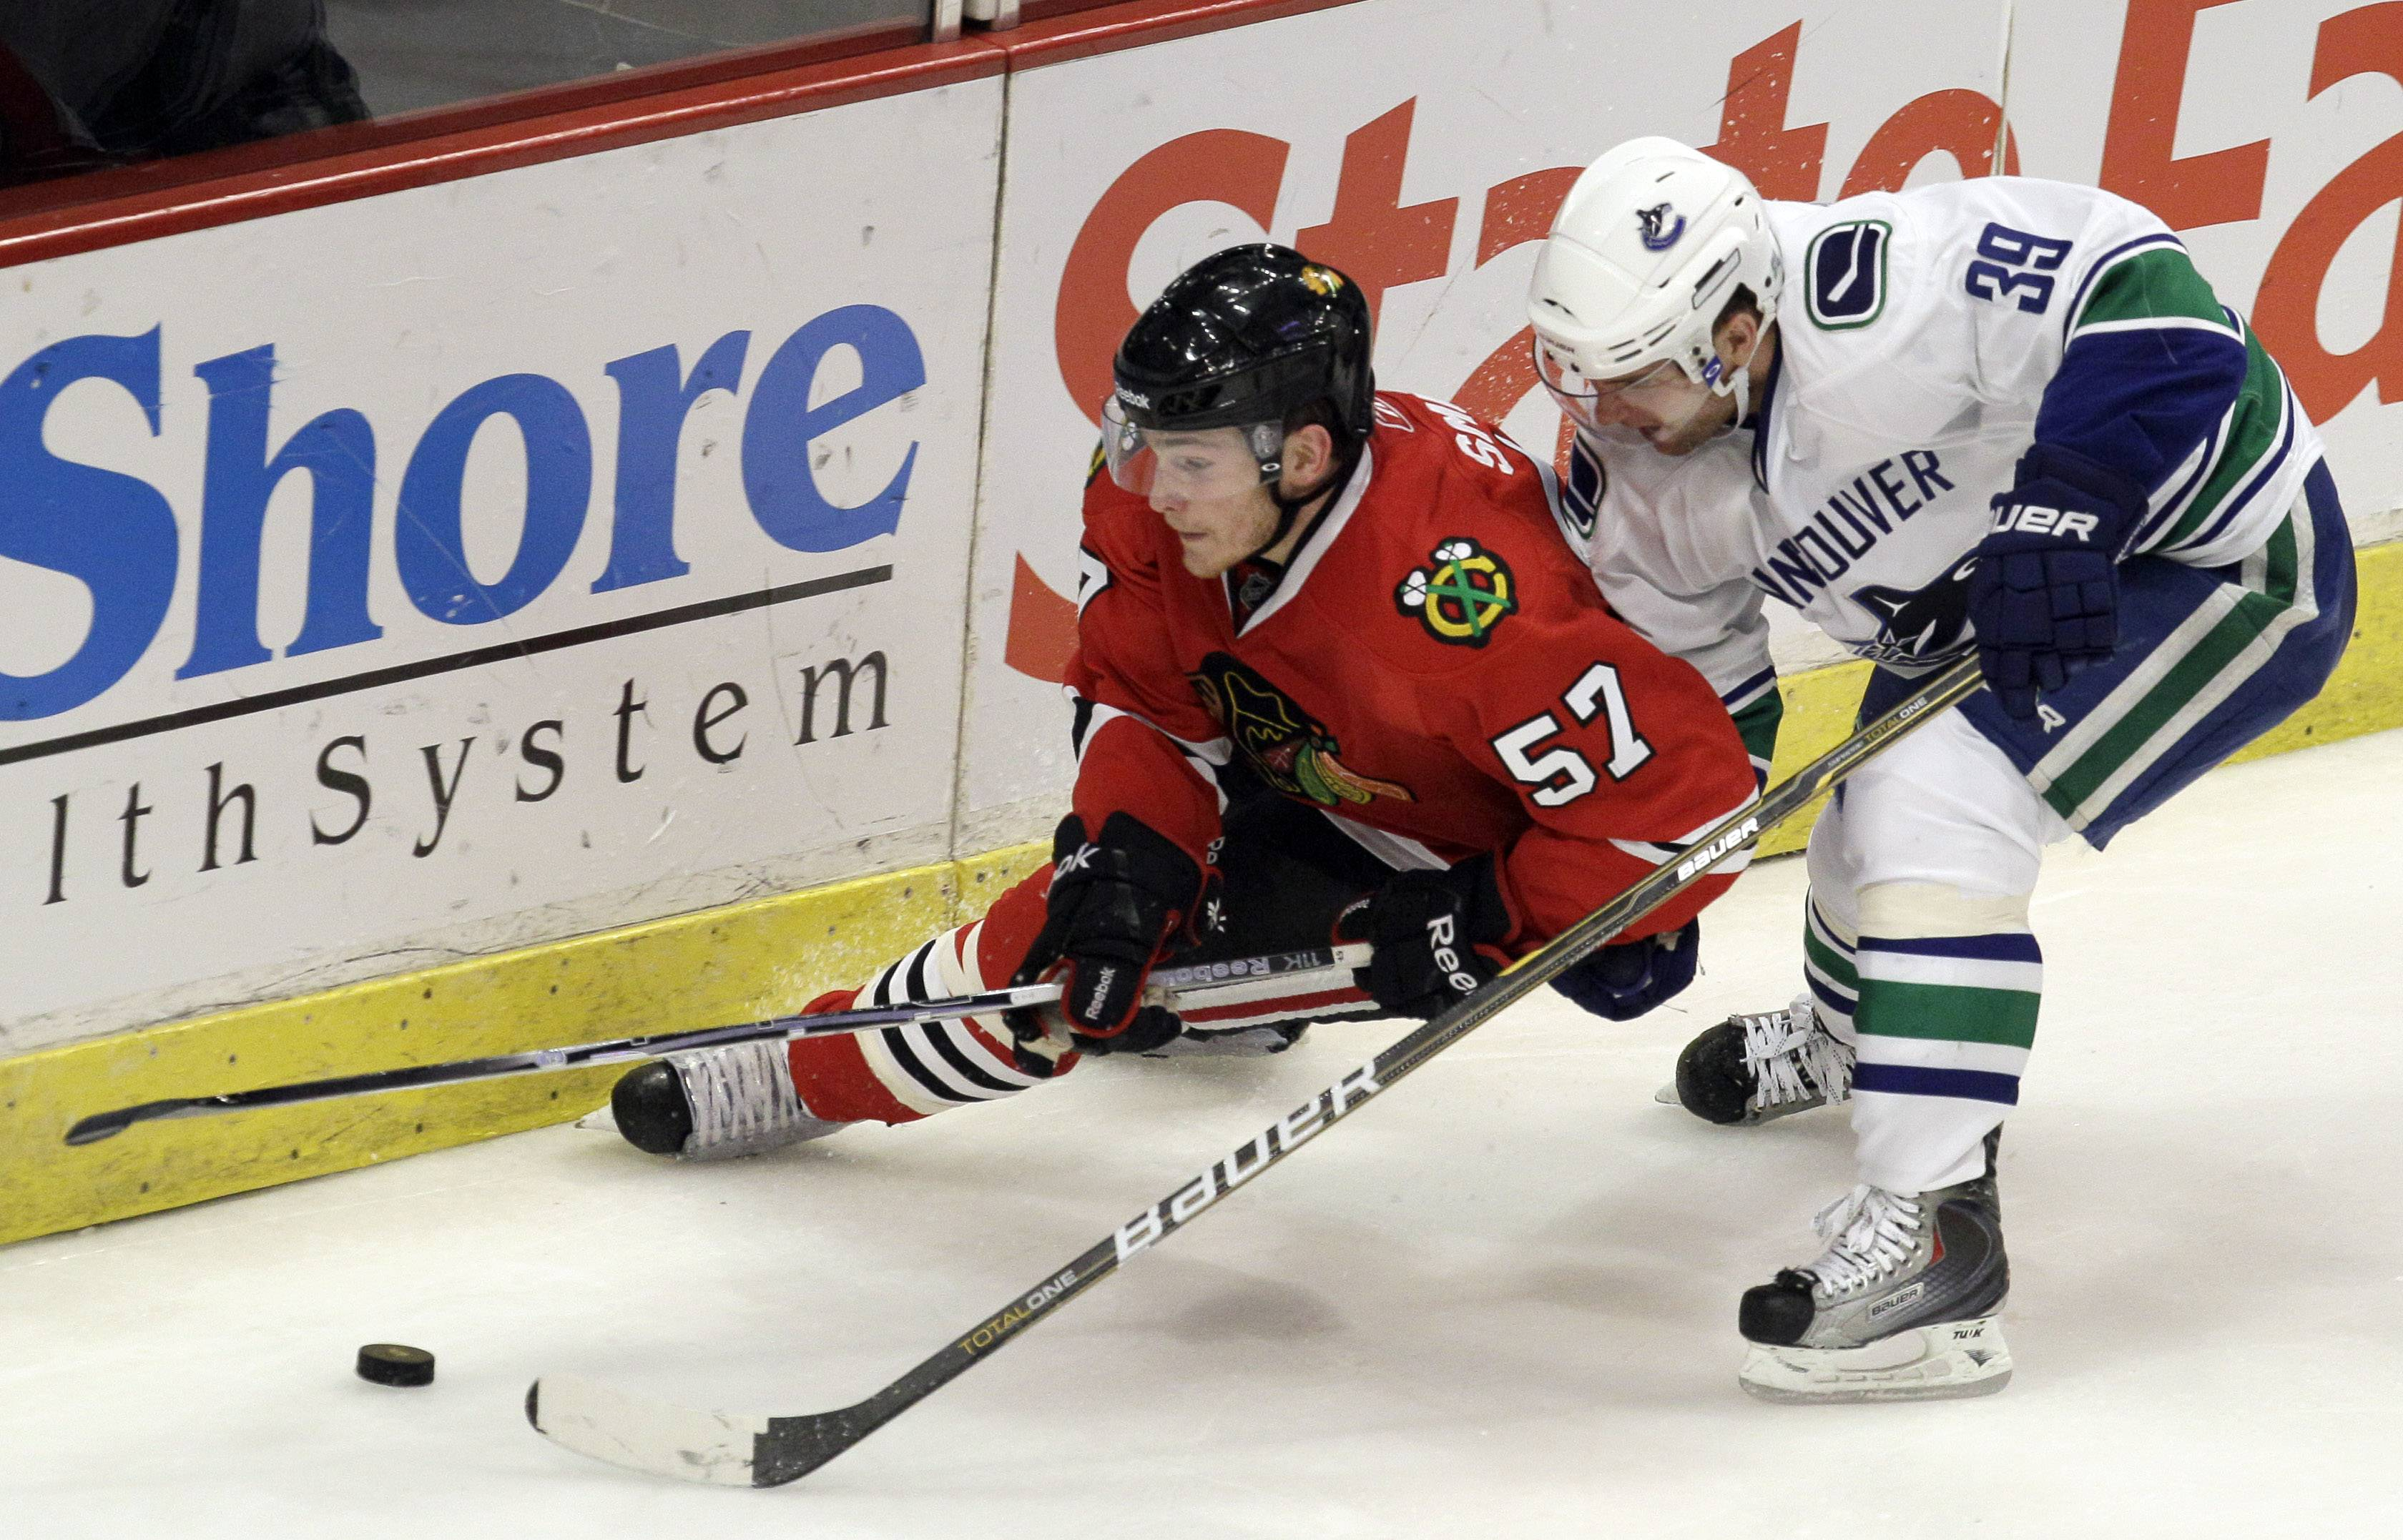 Chicago Blackhawks right wing Ben Smith (57) and Vancouver Canucks center Cody Hodgson (39) fight for the puck Sunday during the third period at the United Center. Smith scored on a rebound during overtime, allowing the Hawks to force a seventh game in the opening-round series.